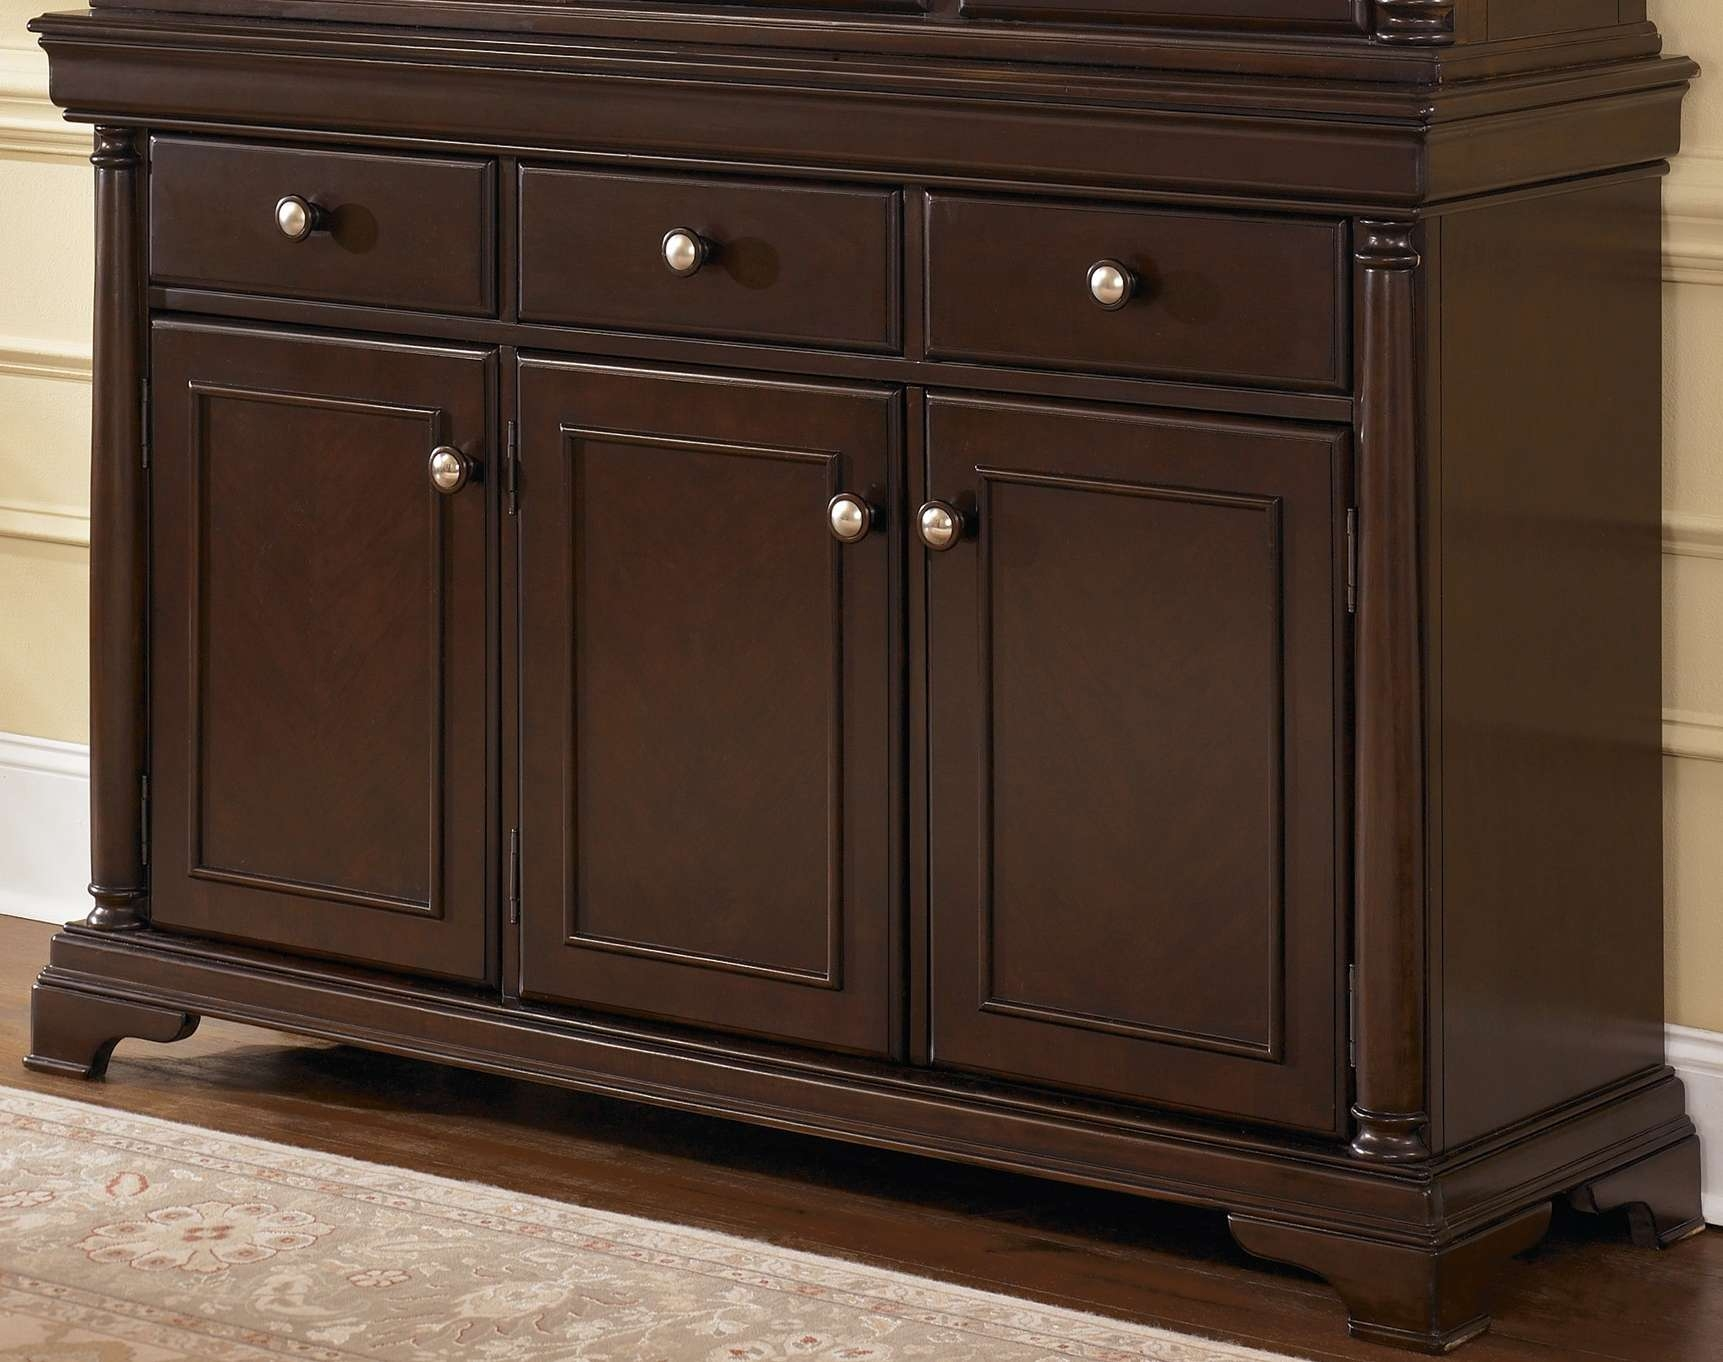 Dining Room Credenza Ideas Including Buffet Cabinet Pictures Within Sideboards Buffet Furniture (View 4 of 20)